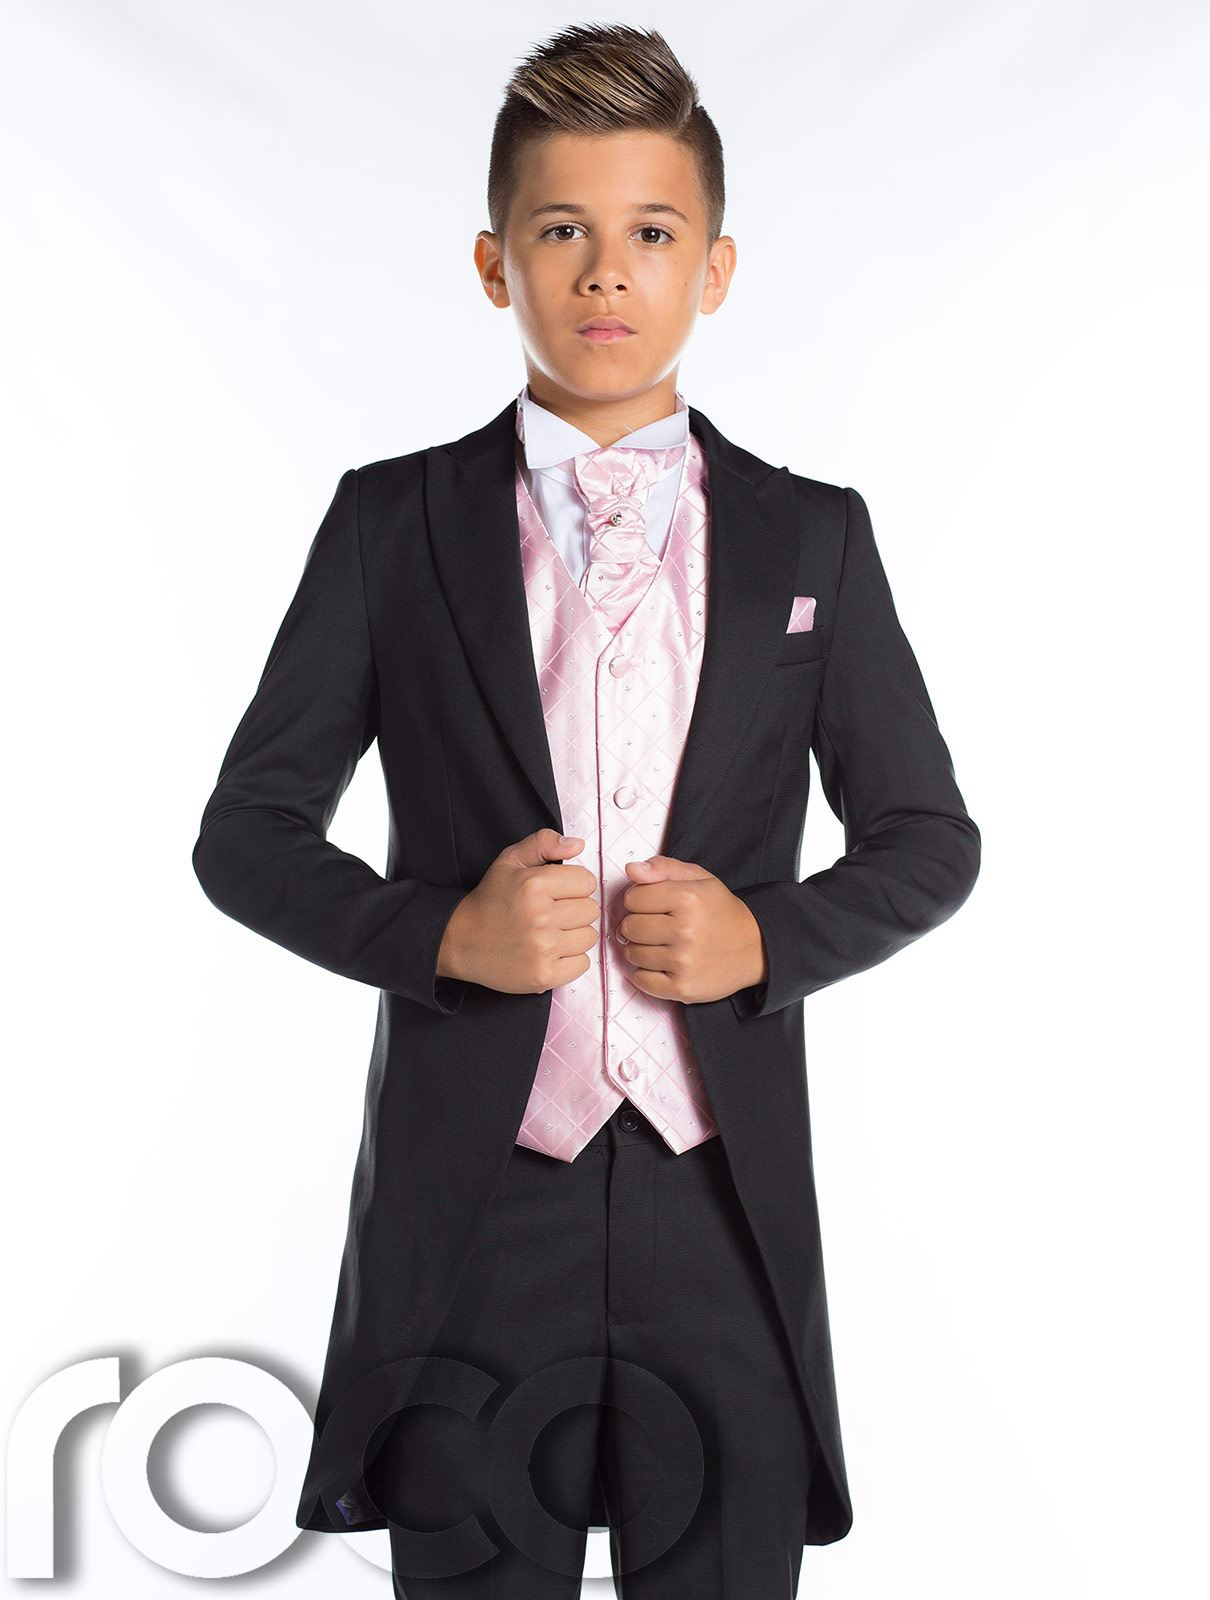 Boys Wedding Suit, Boys Black Tail Suits, Boys Prom Suits, Morning ...